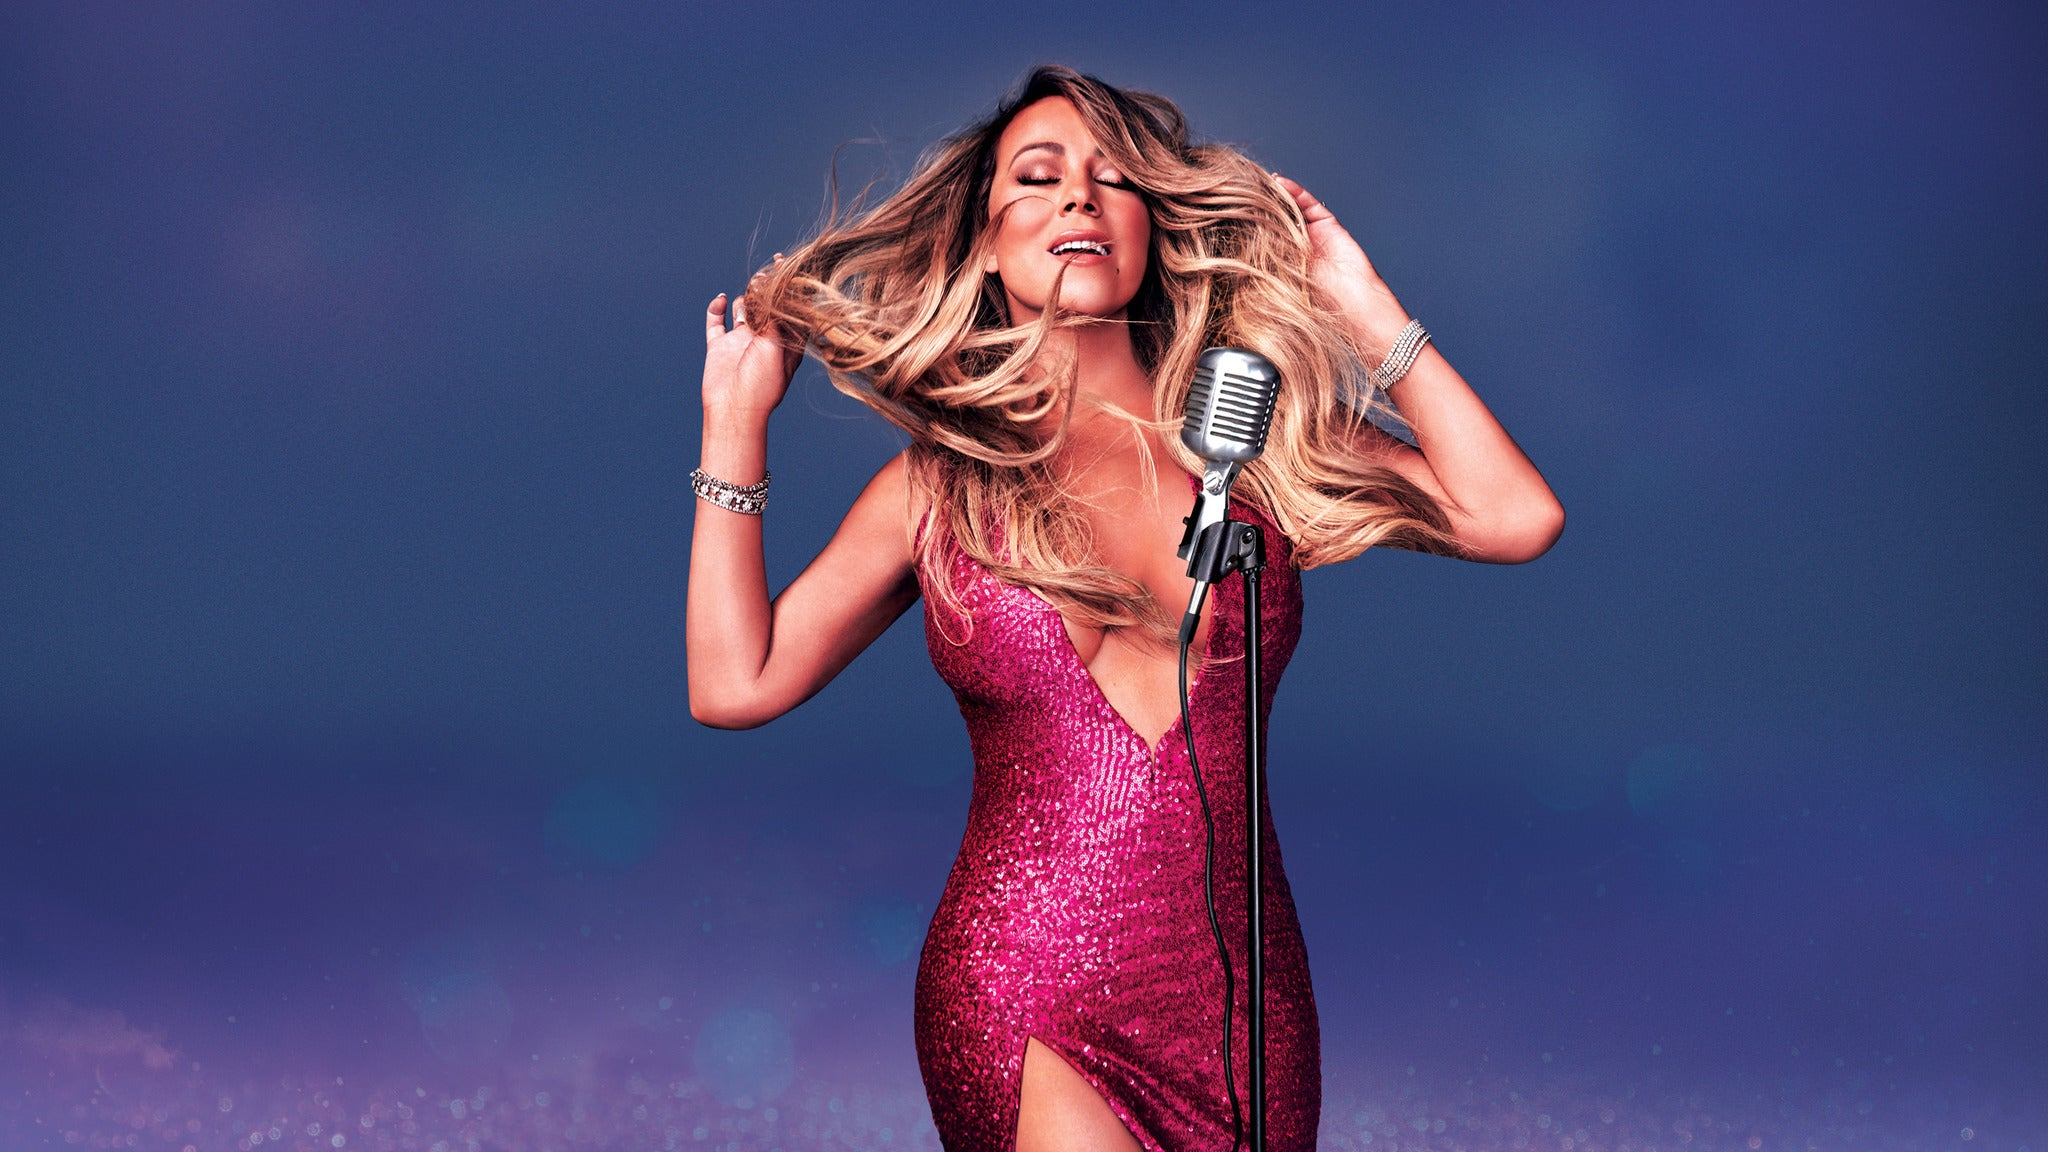 Happy Birthday Mariah Carey Tgj Counts Down Our Favorite 50 Minutes Of The Timeless Diva That Grape Juice